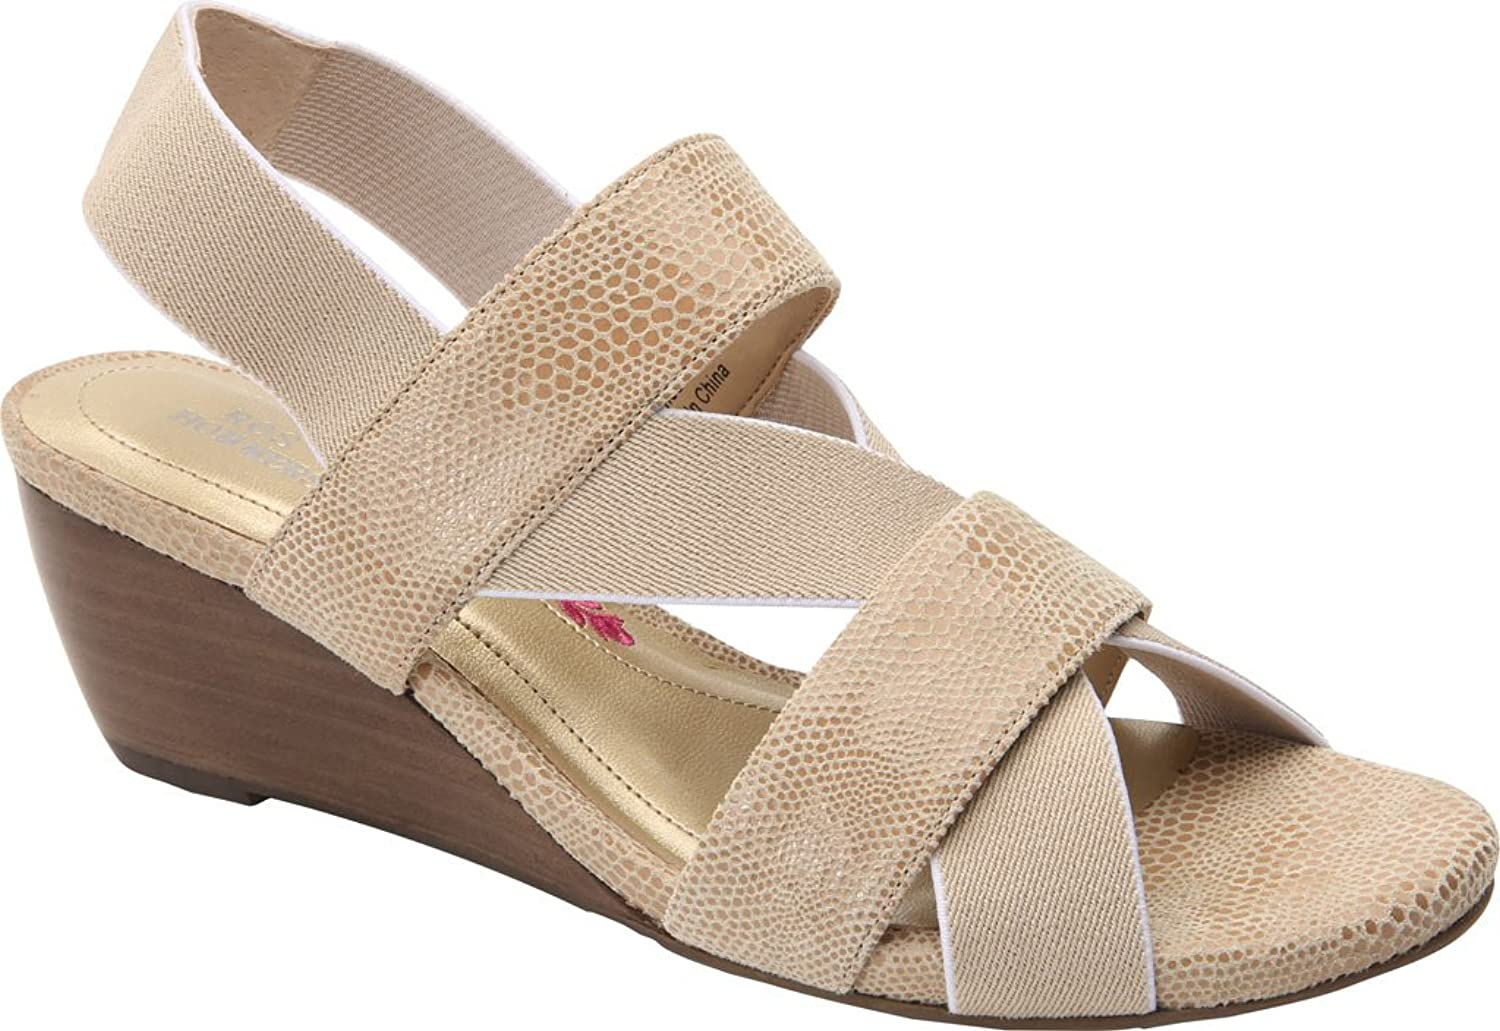 Ros Hommerson Woherren Wynona Strappy Wedge Sandal,Nude Leather,US 7.5 S S S 1e8